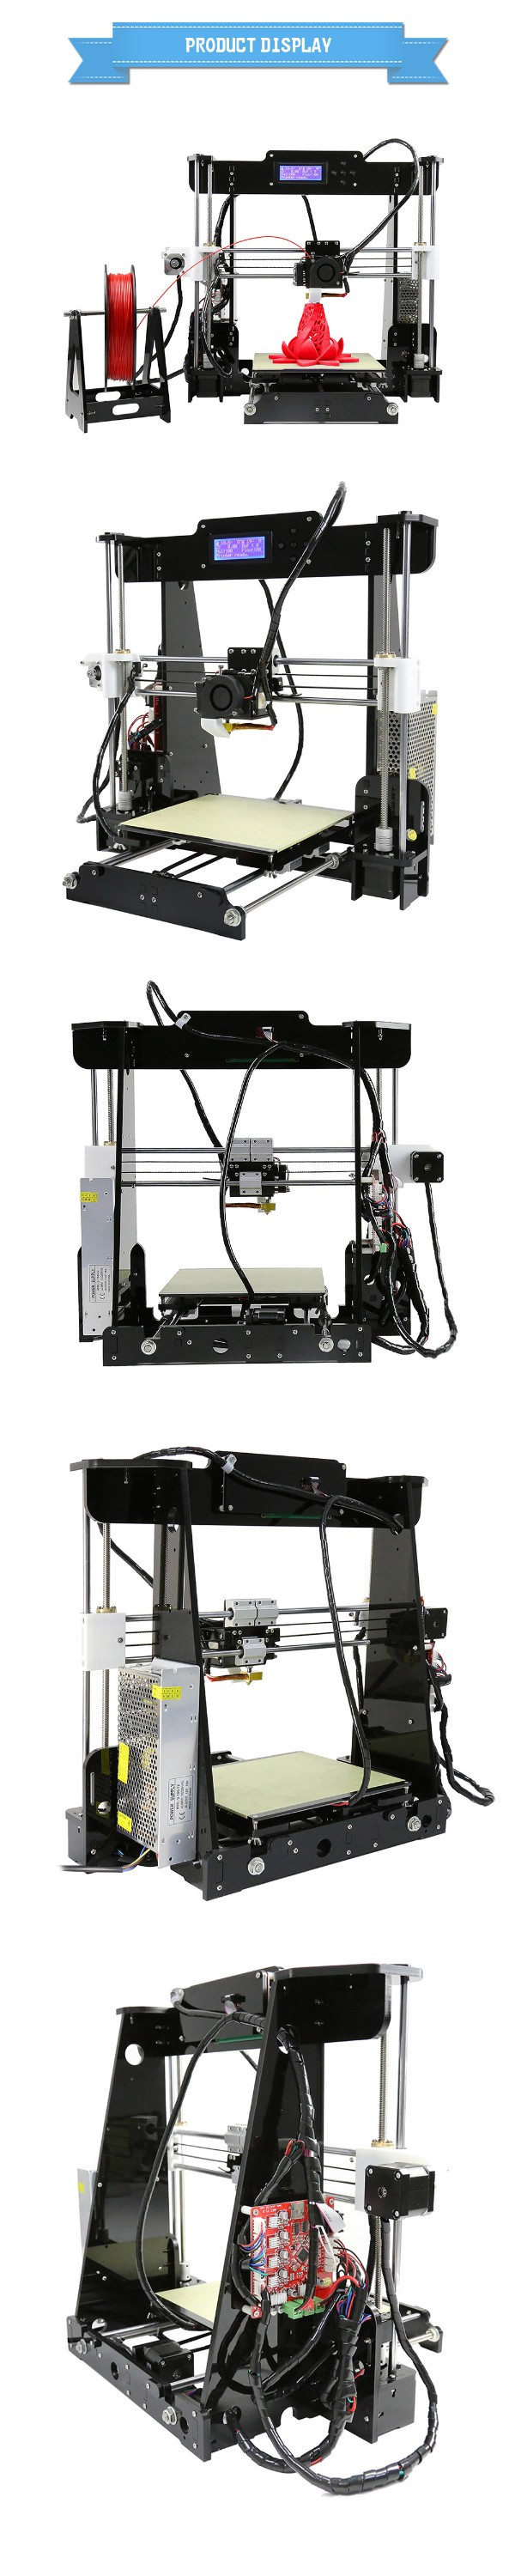 Laurel-A8 Prusa I3 Reprap Acrylic Easy to Install DIY 3D printer Prusa I3 3d printer made in china